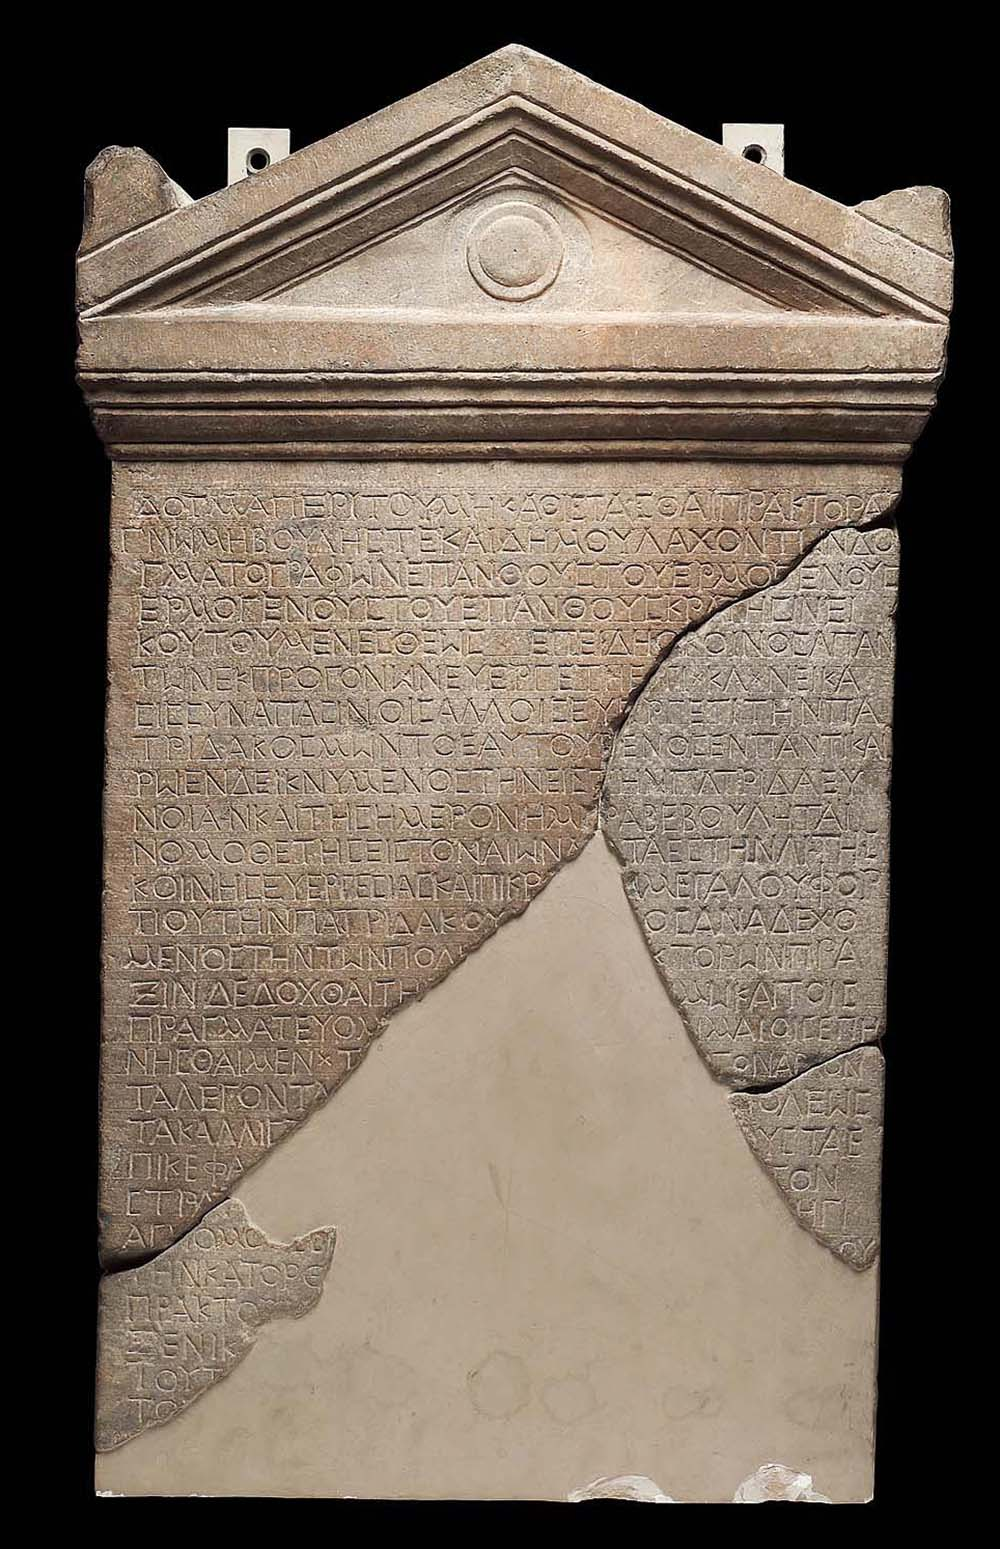 Decree not to appoint tax collectors, Greek, Roman imperial period.